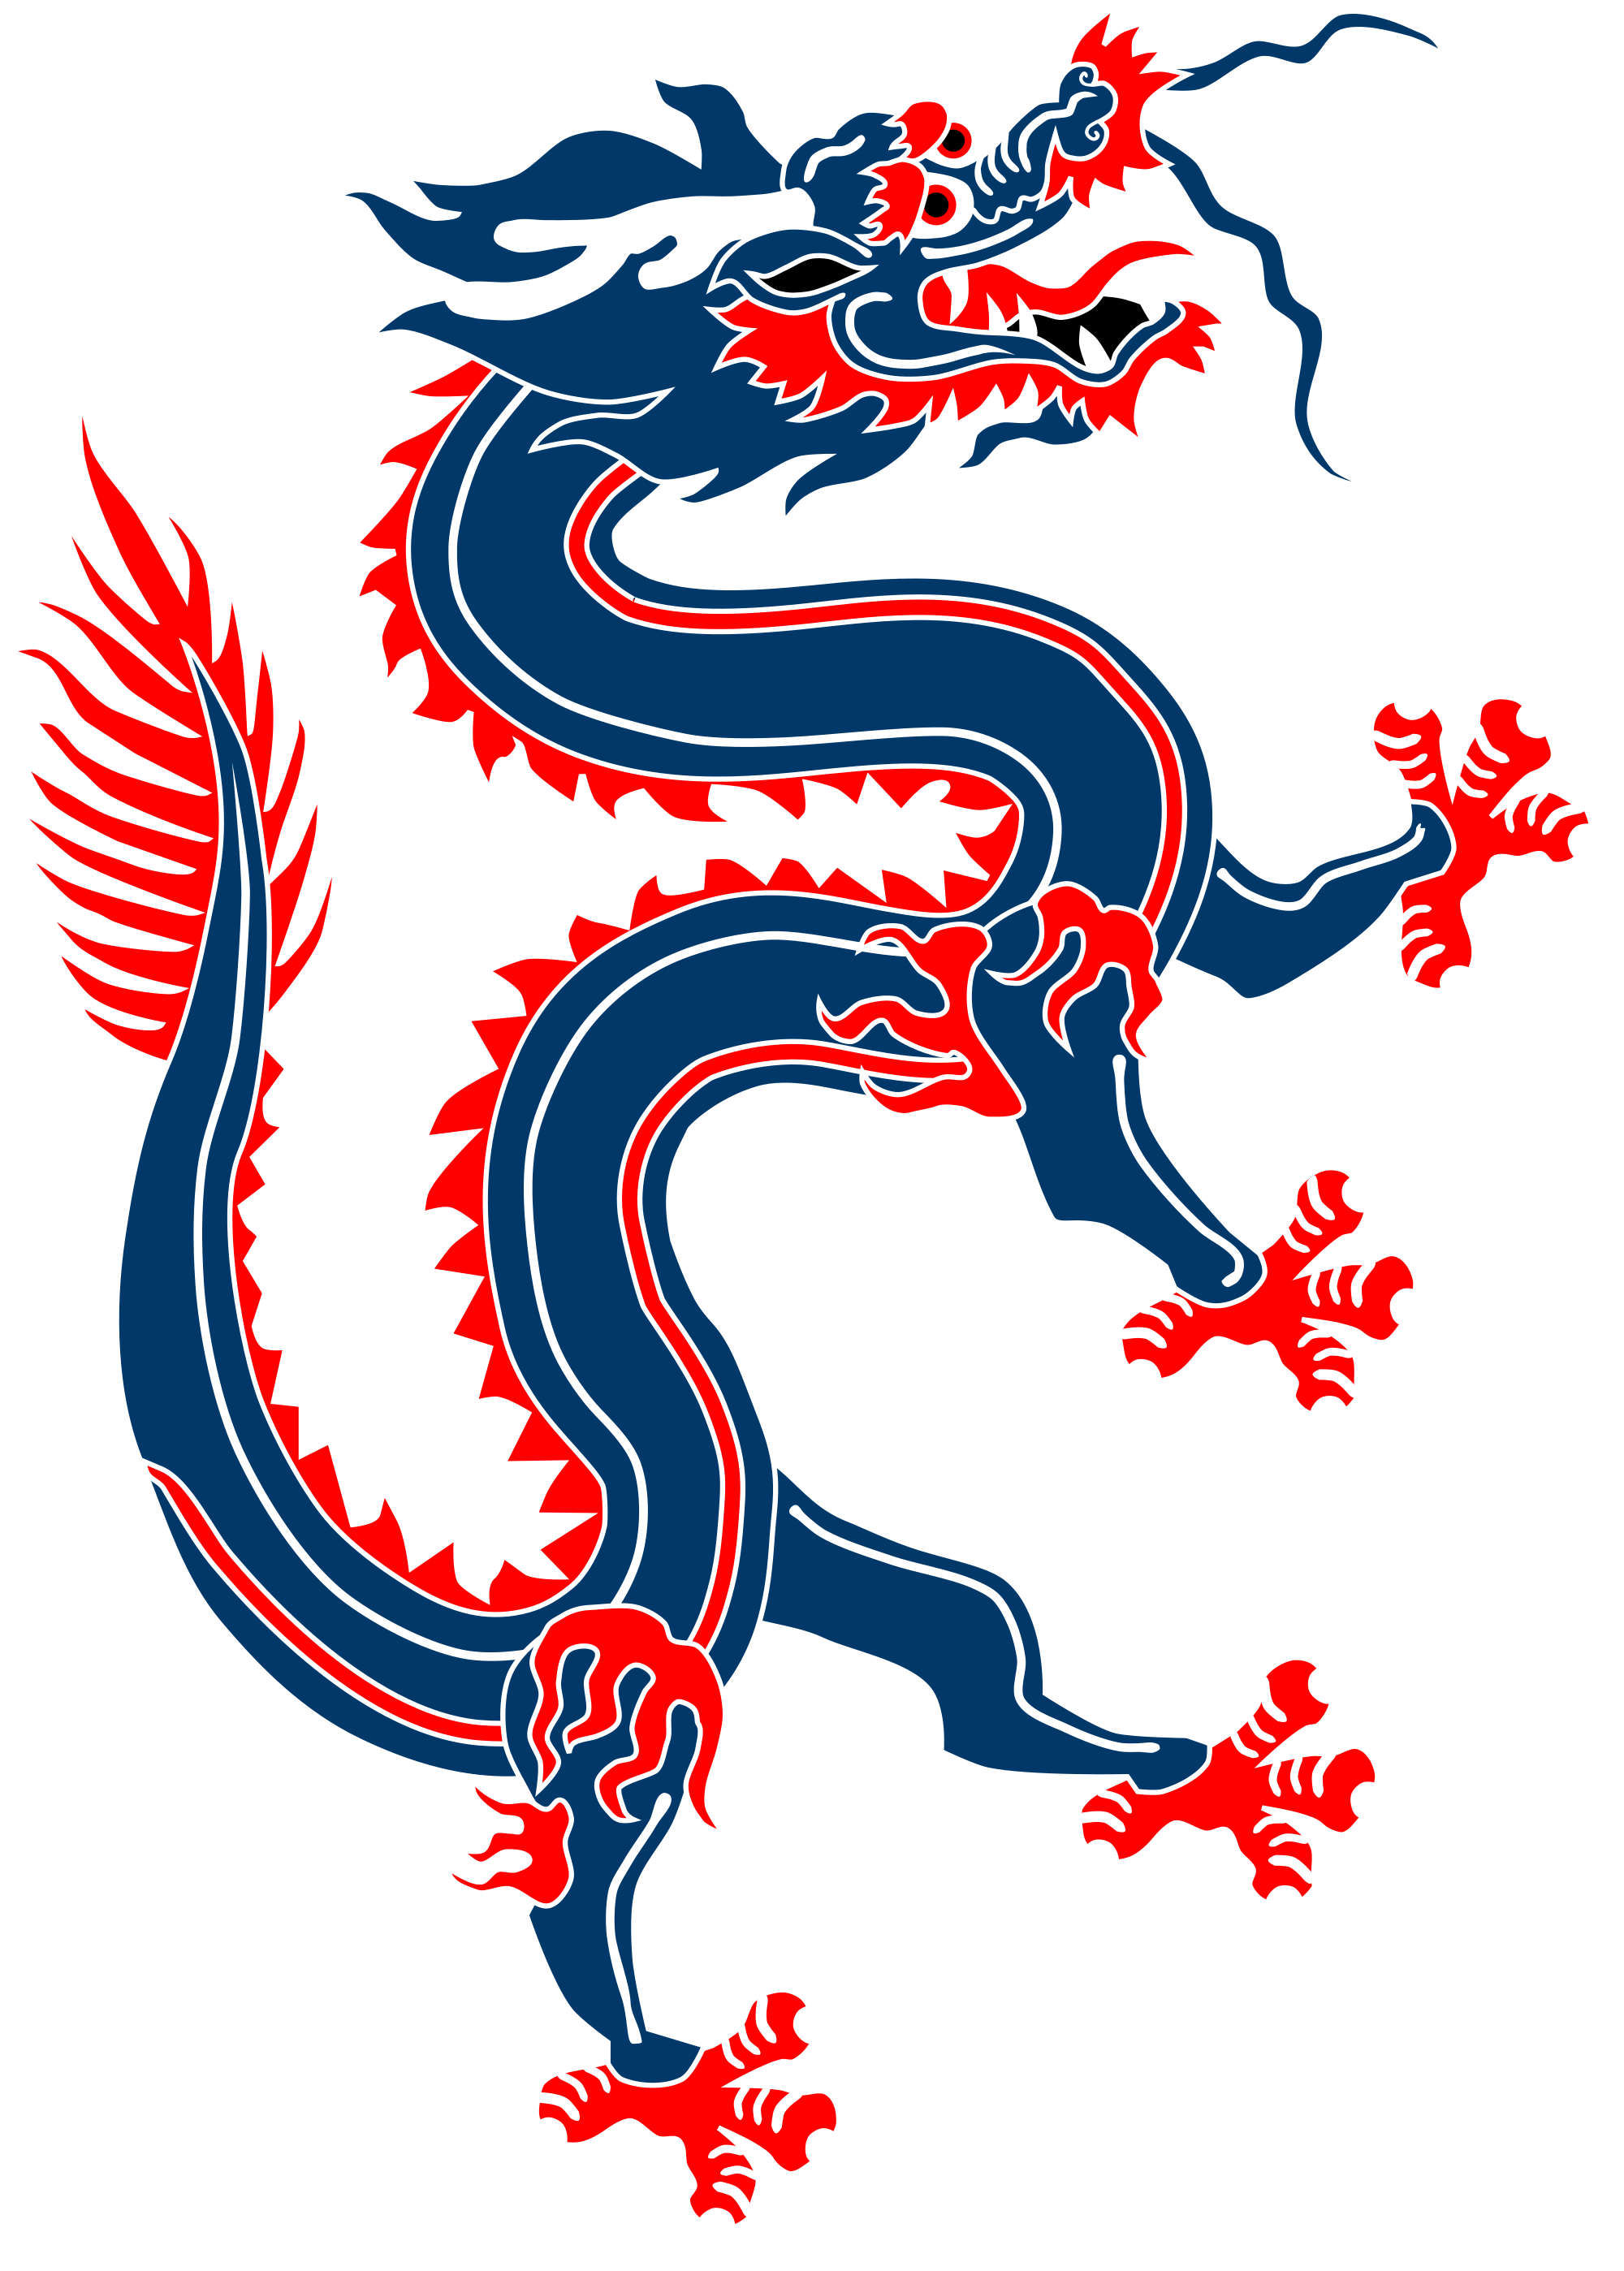 Dragon clipart paper. Image result for chinese